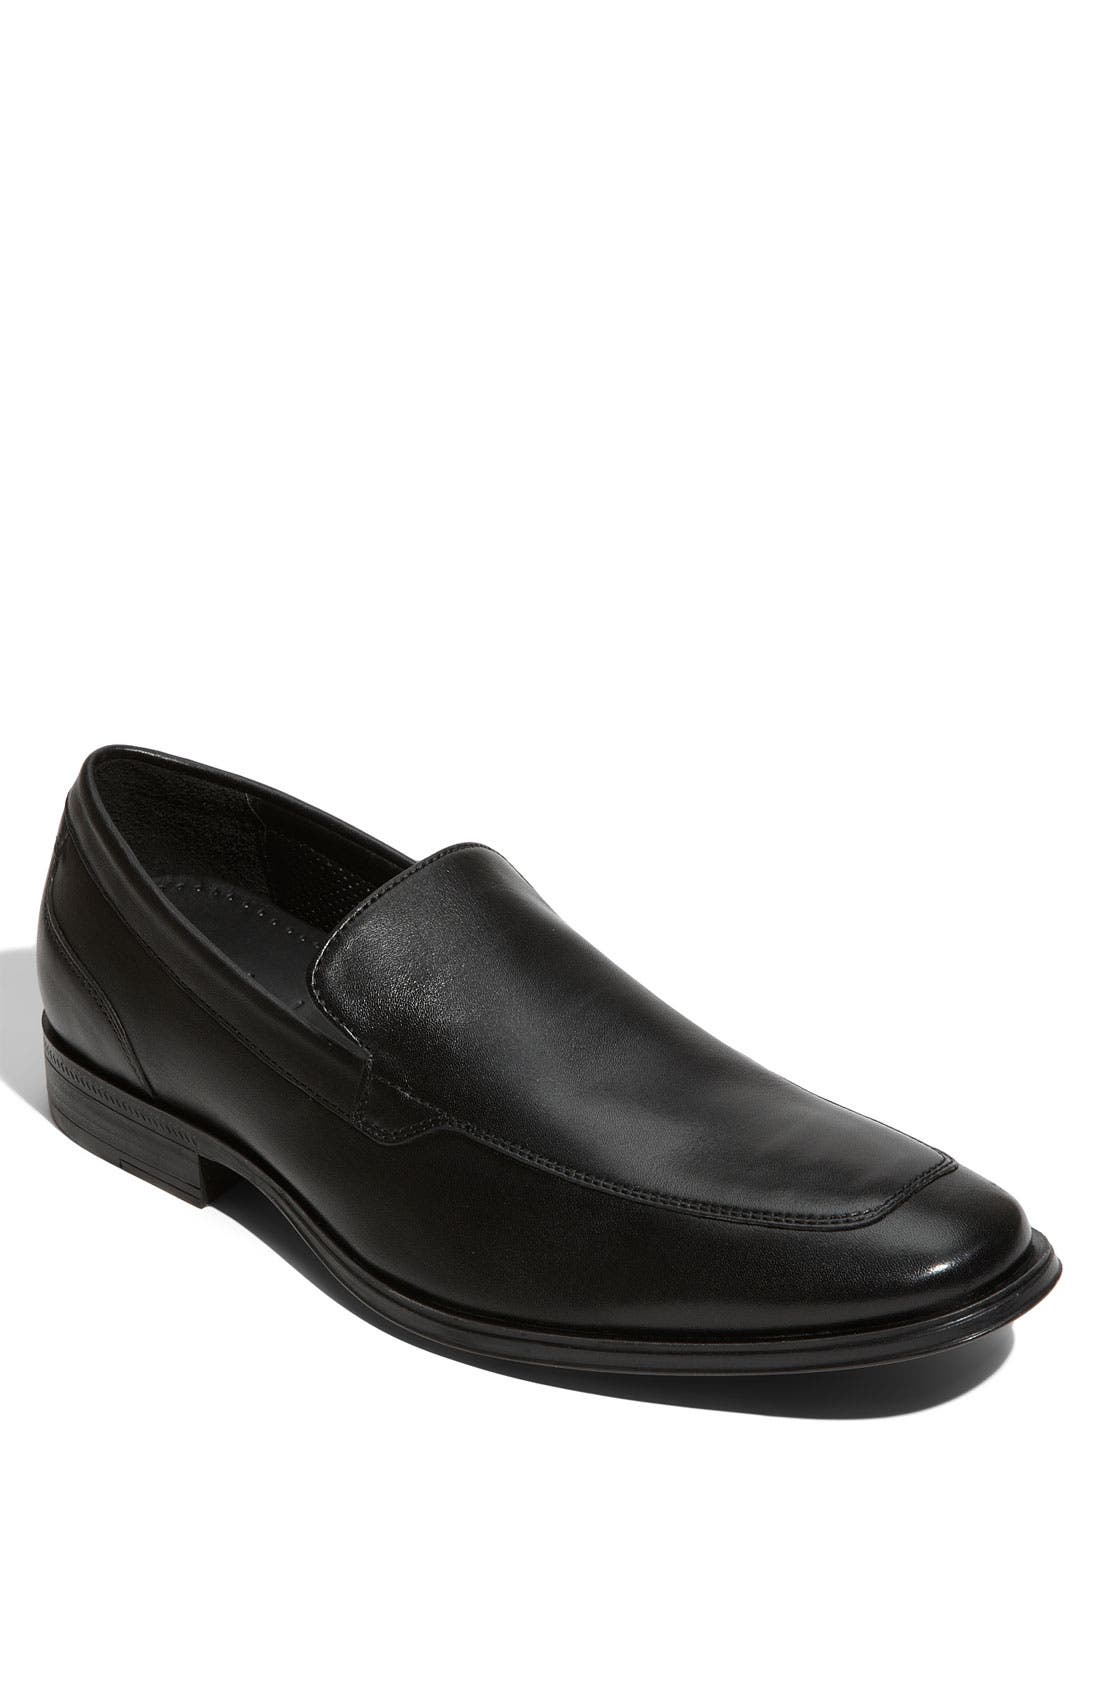 Alternate Image 1 Selected - Cole Haan 'Air Adams' Slip-On